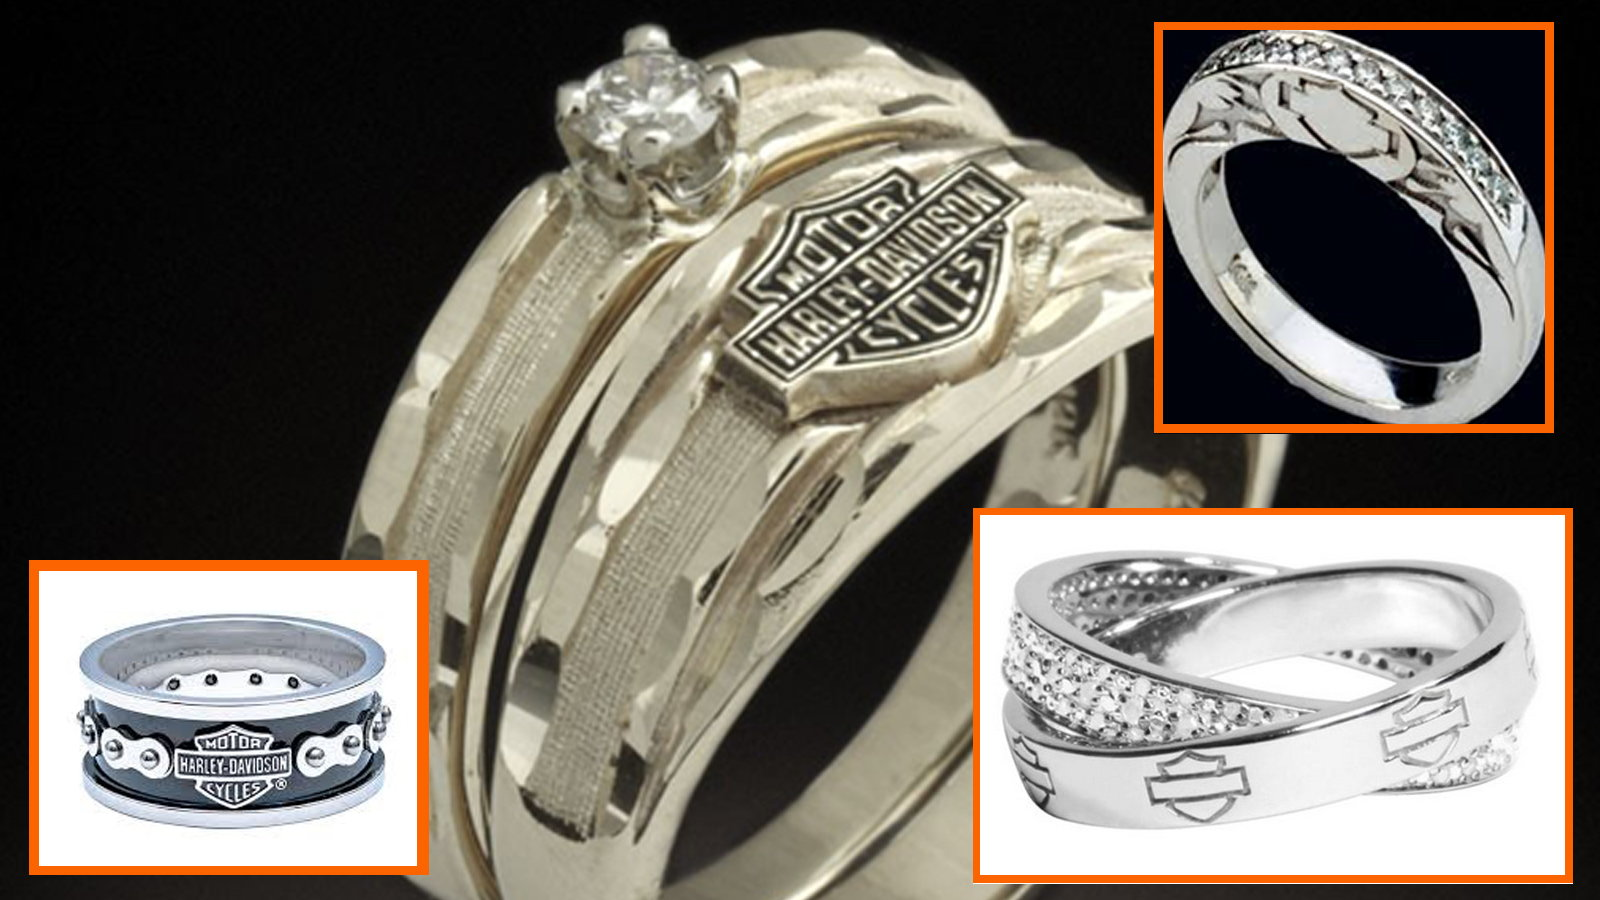 11 things you need for a harley davidson themed wedding harley davidson wedding rings Wedding rings are something personal for a couple If Harley Davidson is what brought you two together why not remember it forever by wearing it on your